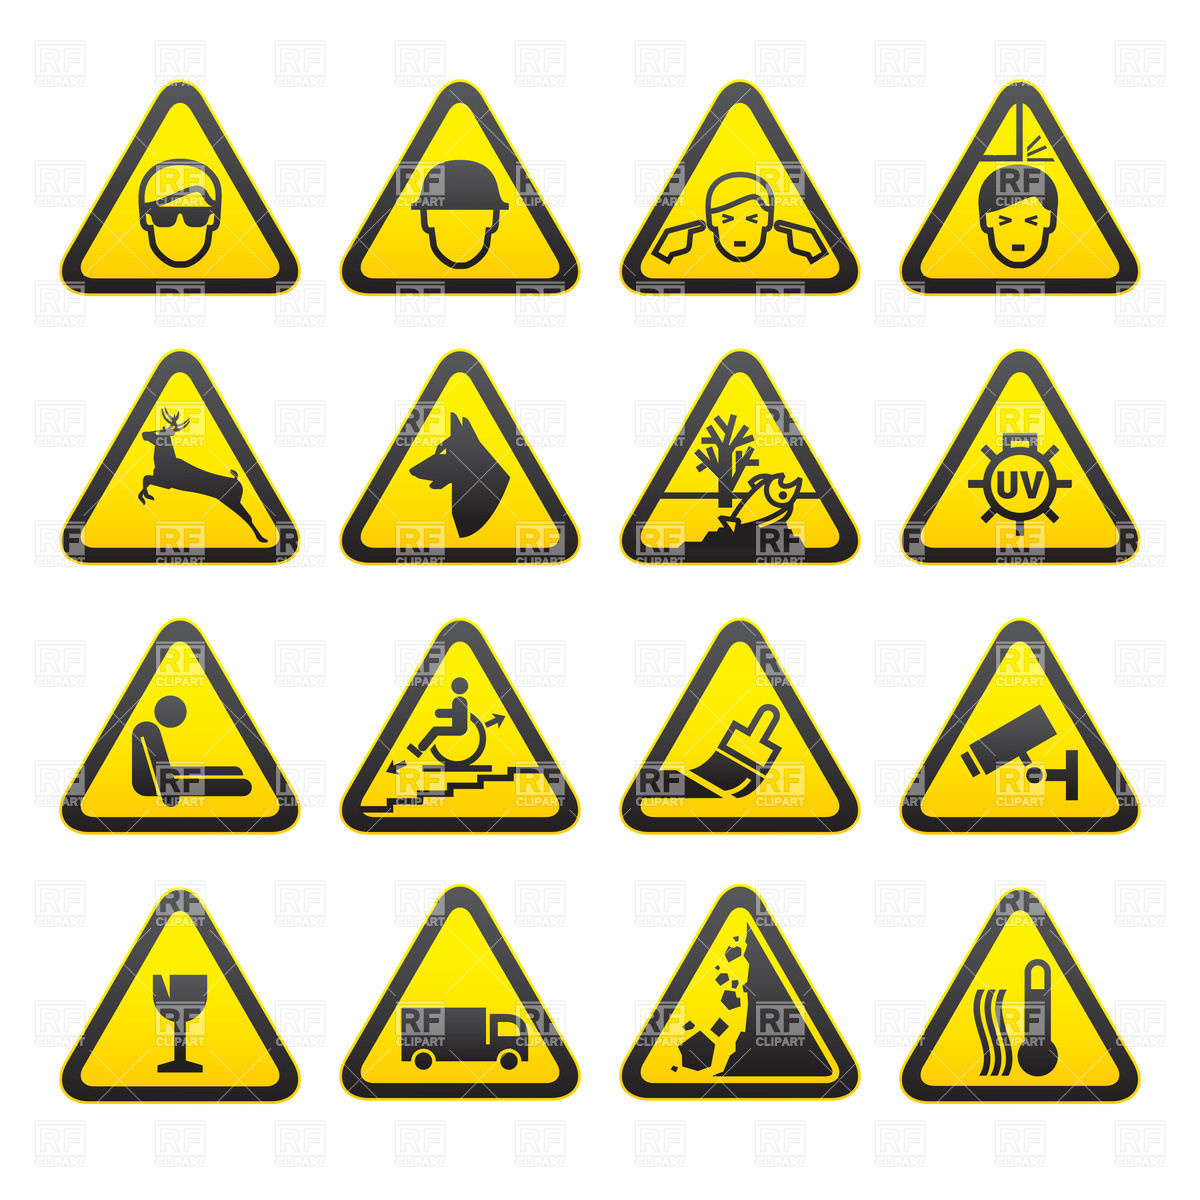 safety clip art pictures clipart panda free clipart images rh clipartpanda com free safety clipart downloads free safety clip art downloads